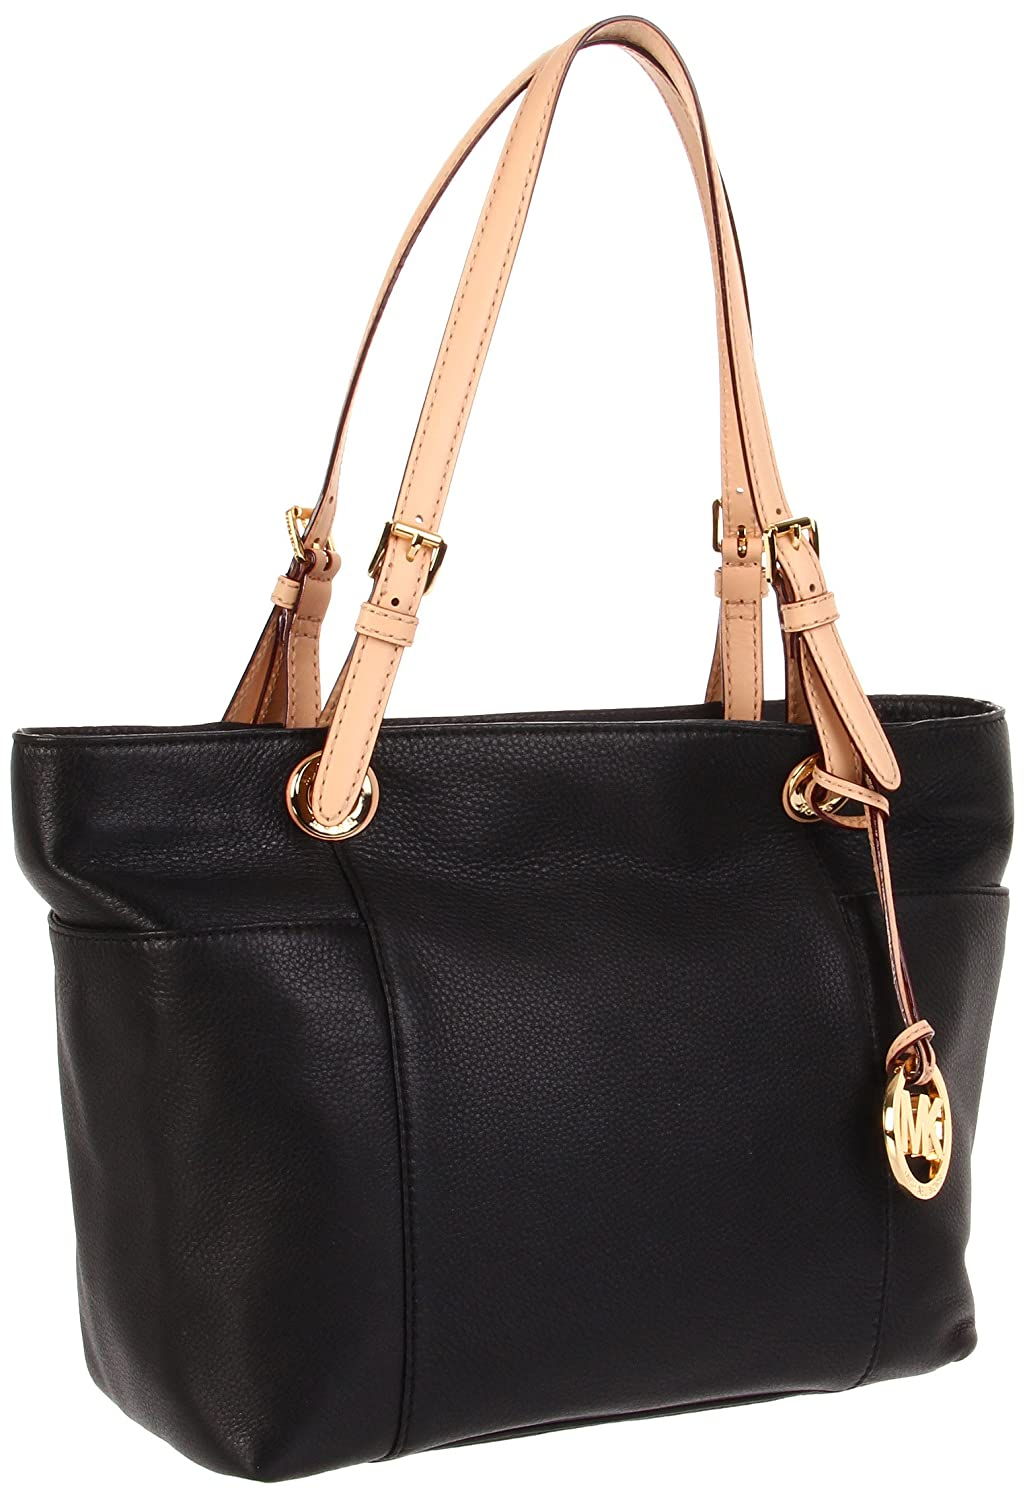 42cc8f171cc5 MICHAEL Michael Kors Jet Set Tote Black: Handbags: Amazon.com